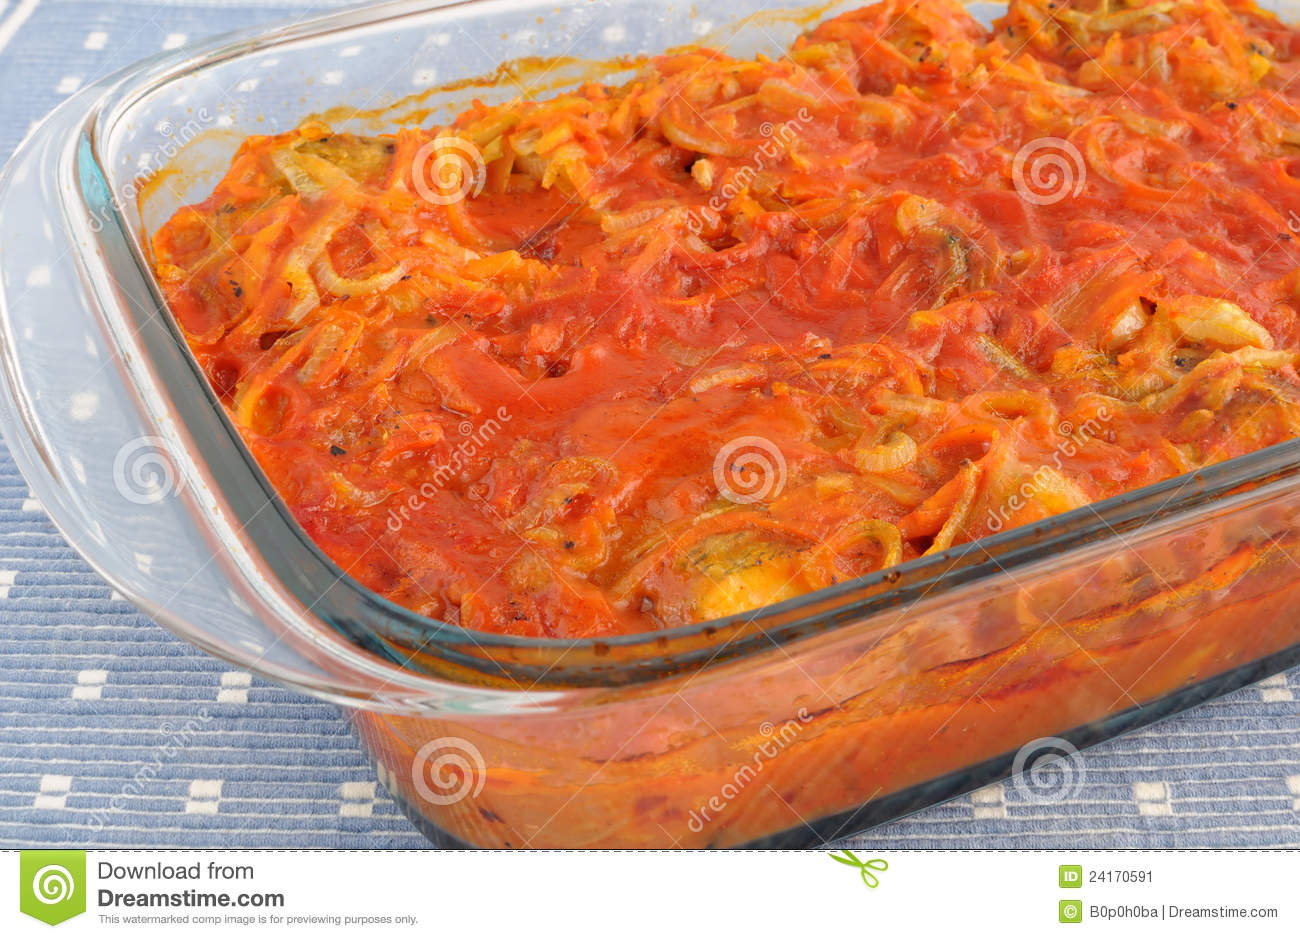 Baked Fish In Tomato Sauce With Vegetables Stock Image - Image ...